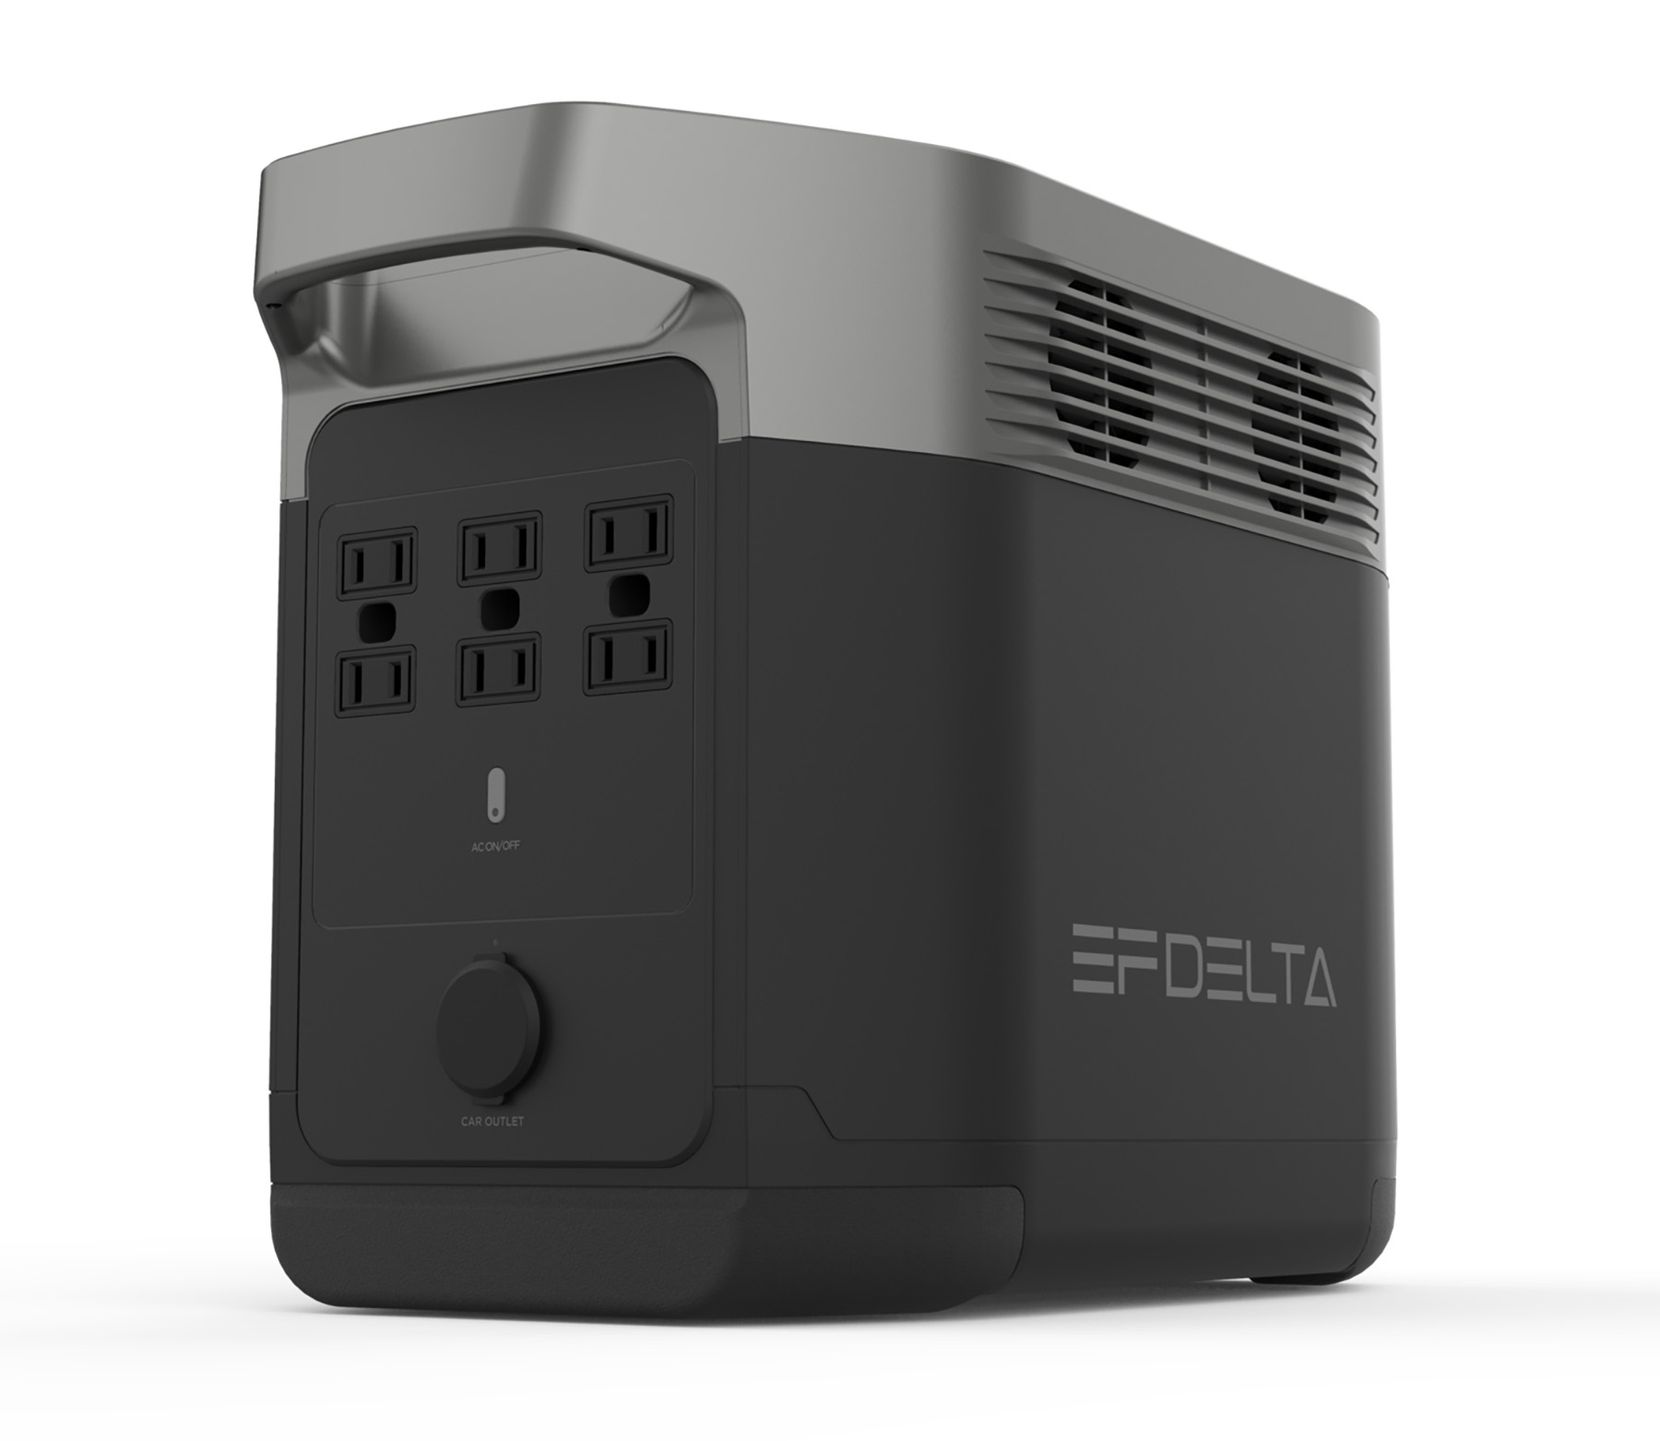 The rear of the EcoFlow Delta Portable Power Station has six AC outlets.